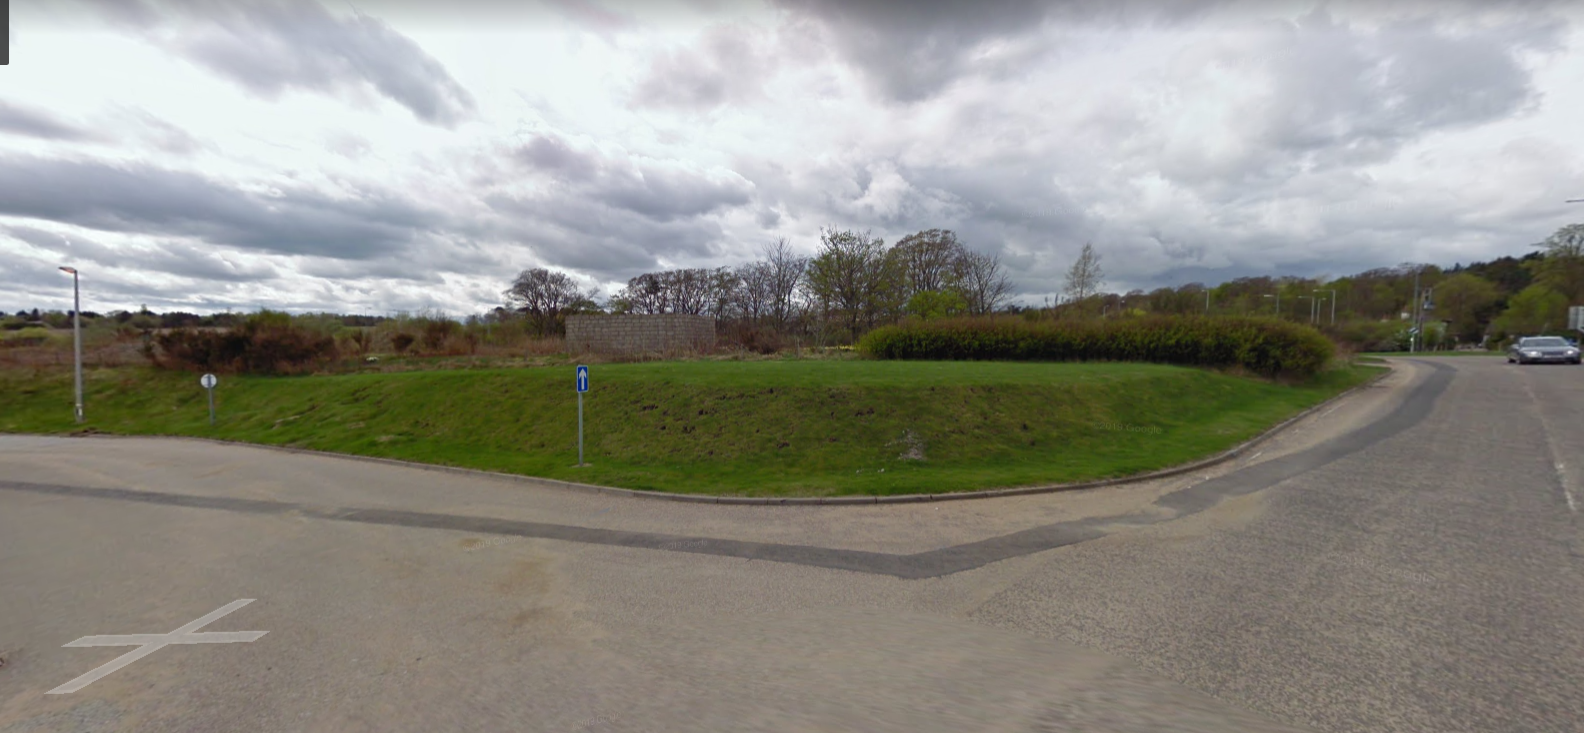 Plans for a new business park have been proposed in Thainstone